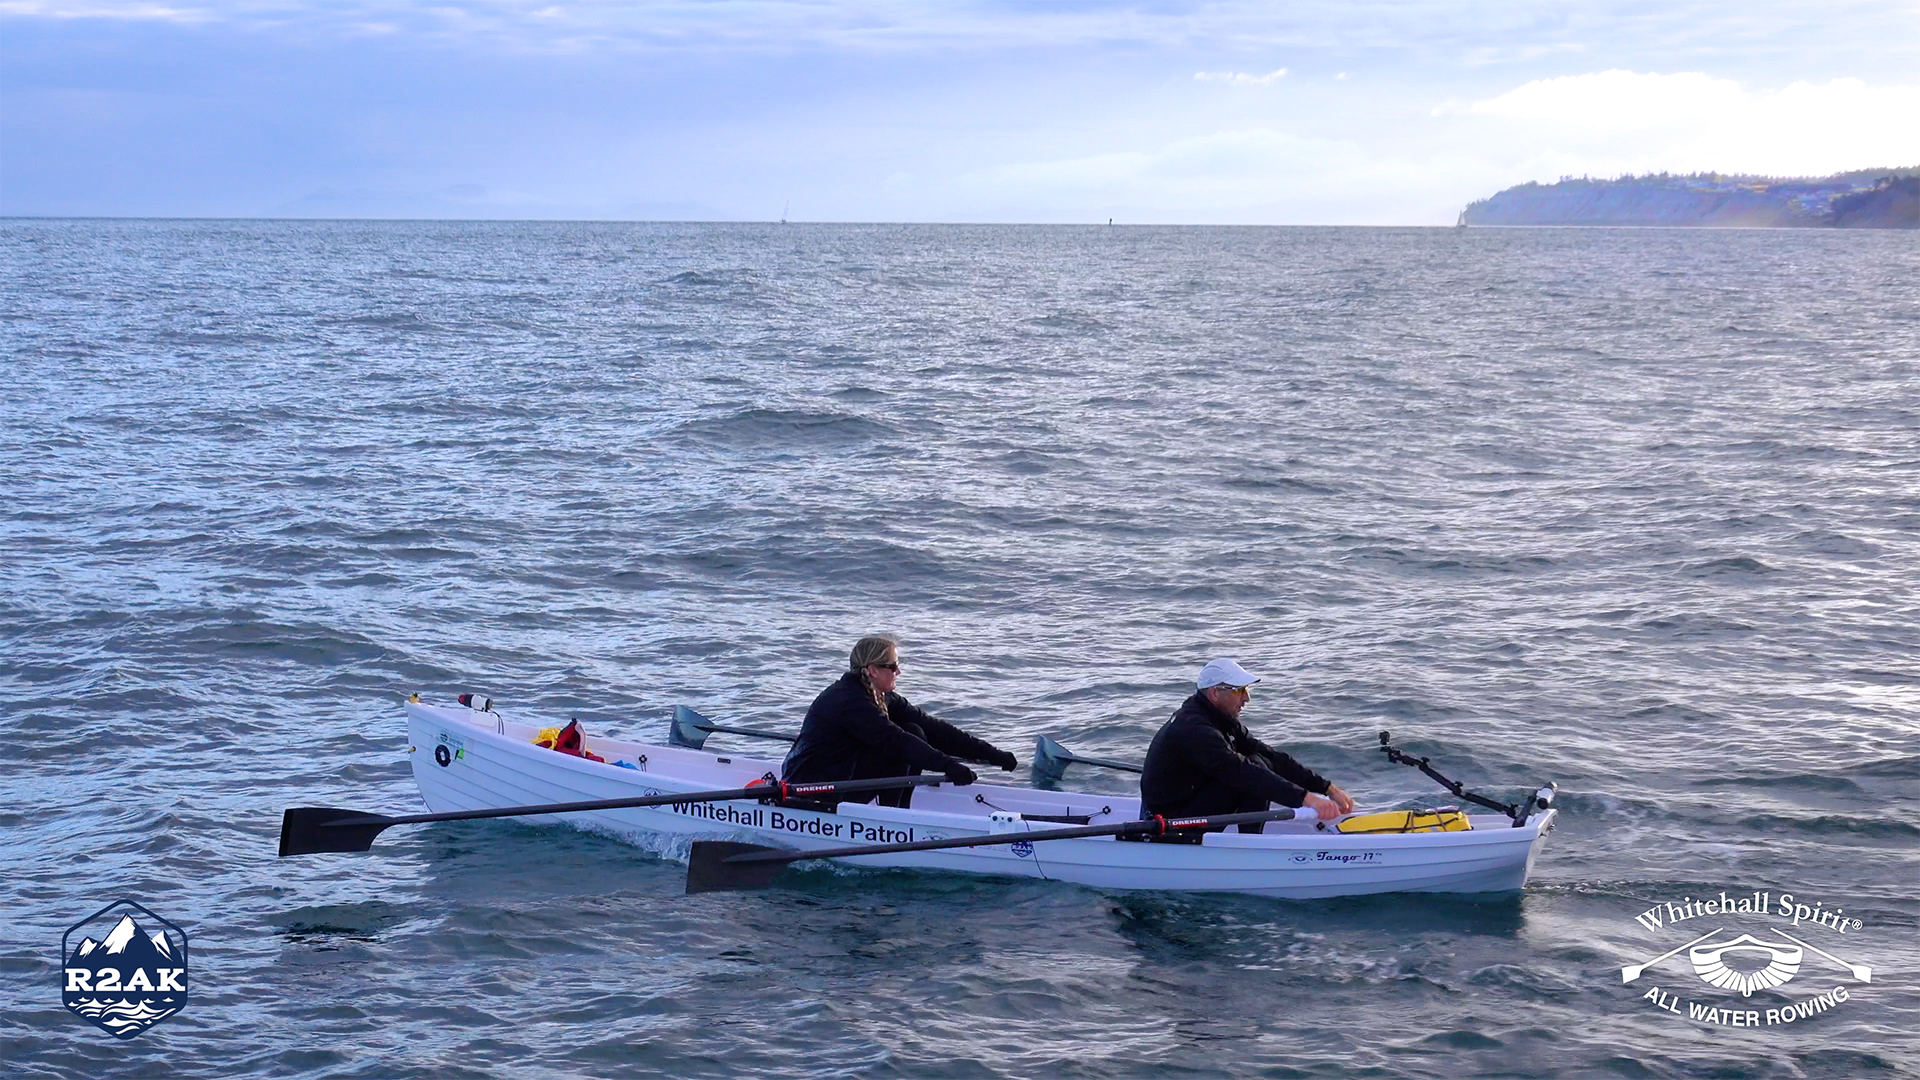 Race-to-Alaska-R2AK-Diana Lesieur-Peter-Vogel-Whitehall-Rowing